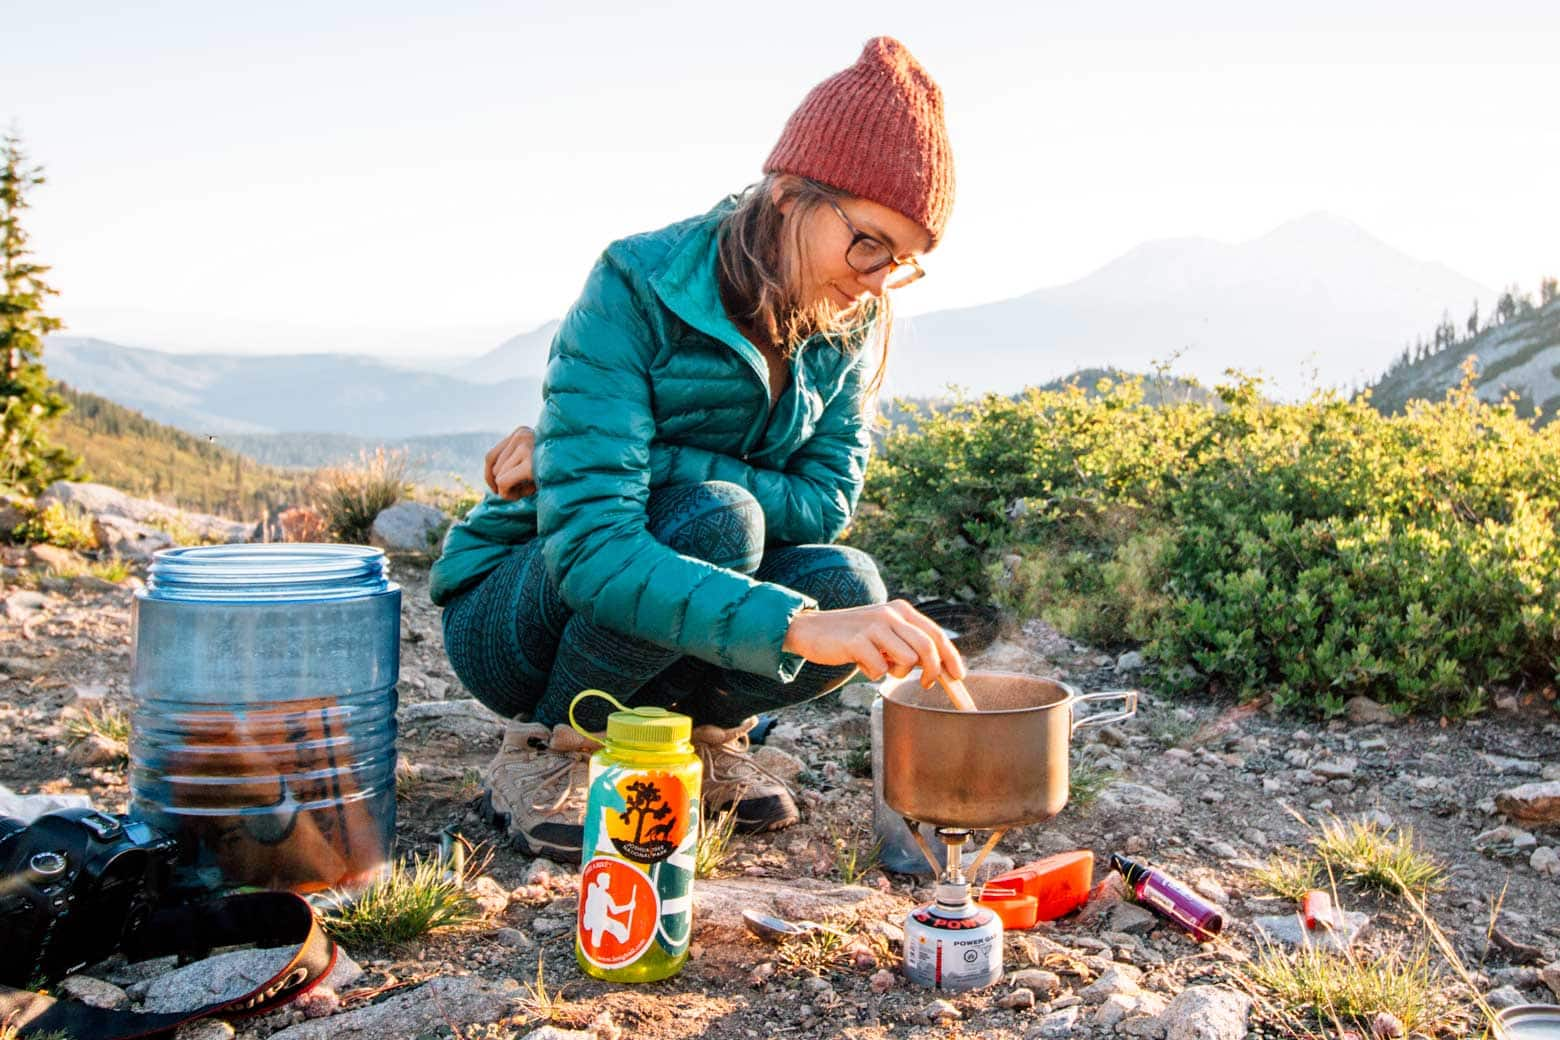 Woman cooking a meal on a backpacking stove.